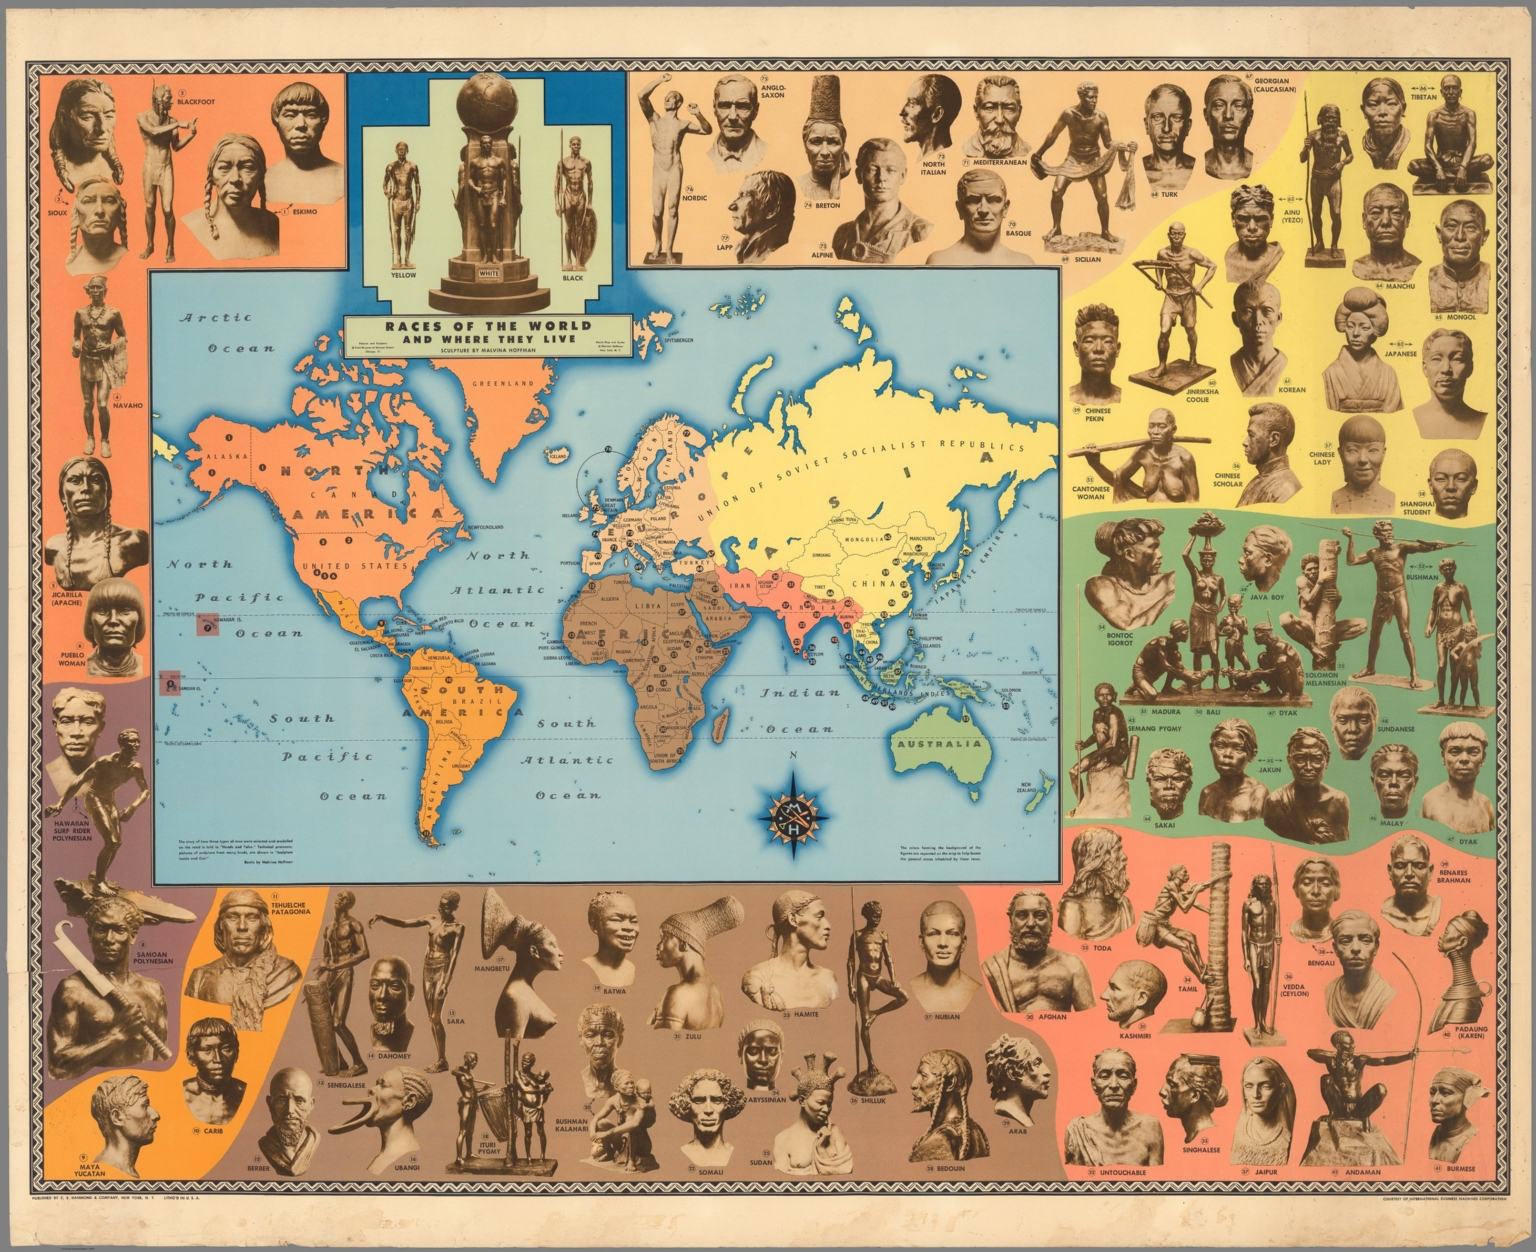 Races Of The World Map.Races Of The World And Where They Live David Rumsey Historical Map